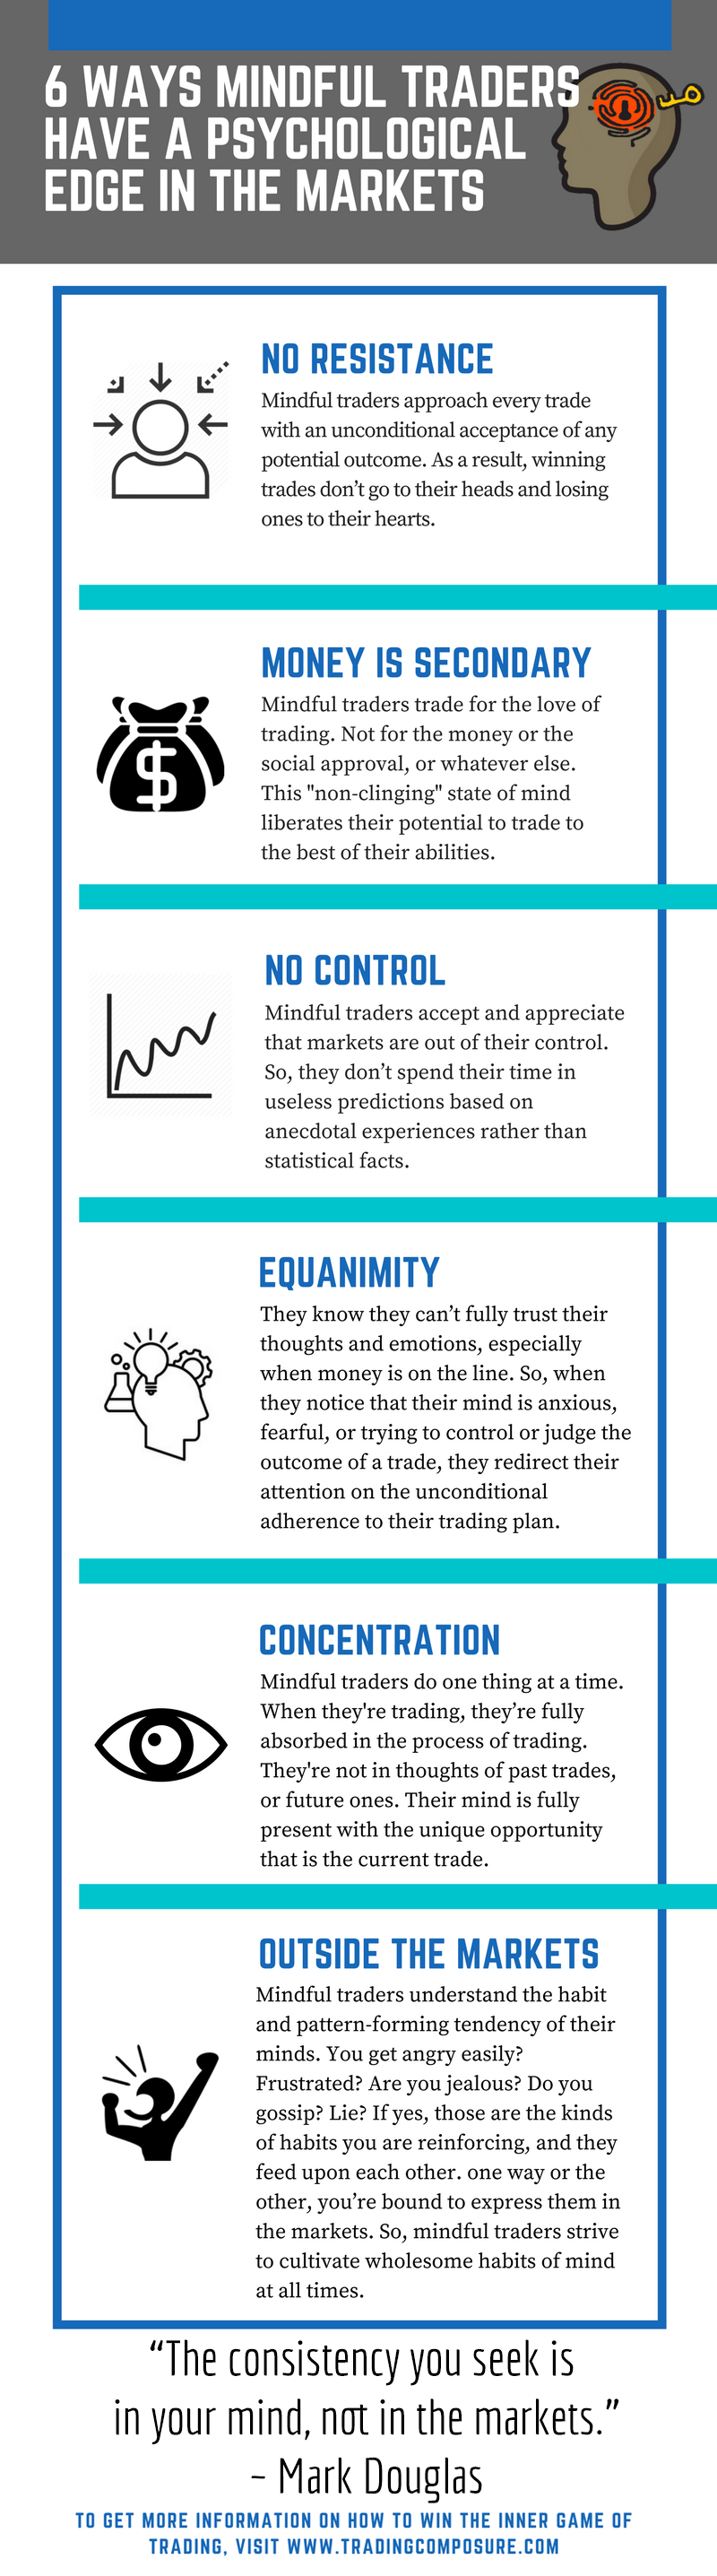 7 ways mindful traders have a psychological edge in the markets